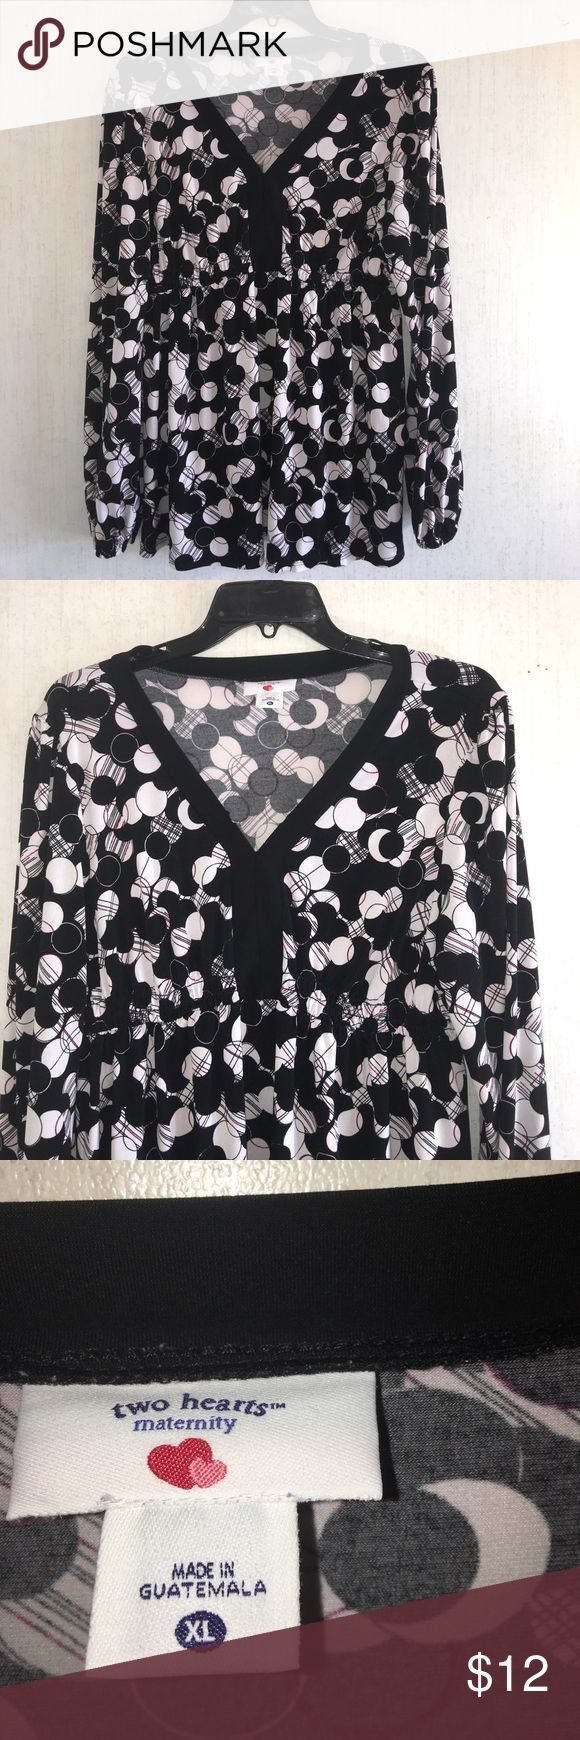 Women's Two Hearts Maternity Top. Size XLarge. Women's Two Hearts Maternity Top. Size XLarge.    Very Stretchy! Multi-colors: Black, White and Red. In Excellent Condition! Like New! No color fading, stains, holes or defects! Two Hearts Maternity Tops Blouses